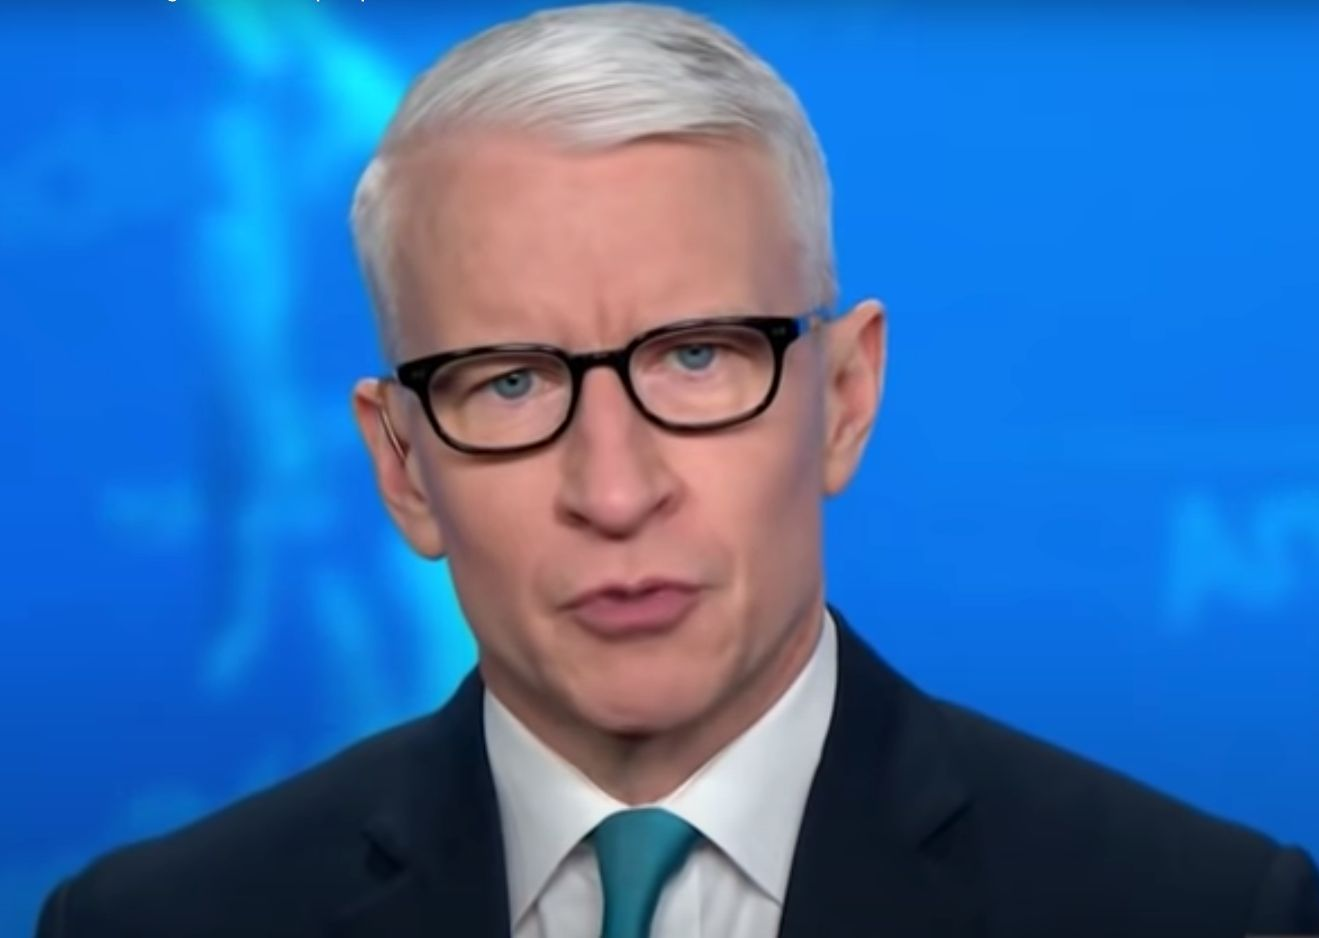 Anderson cooper debunks donald Trump's 'wartime president' claim once and for all